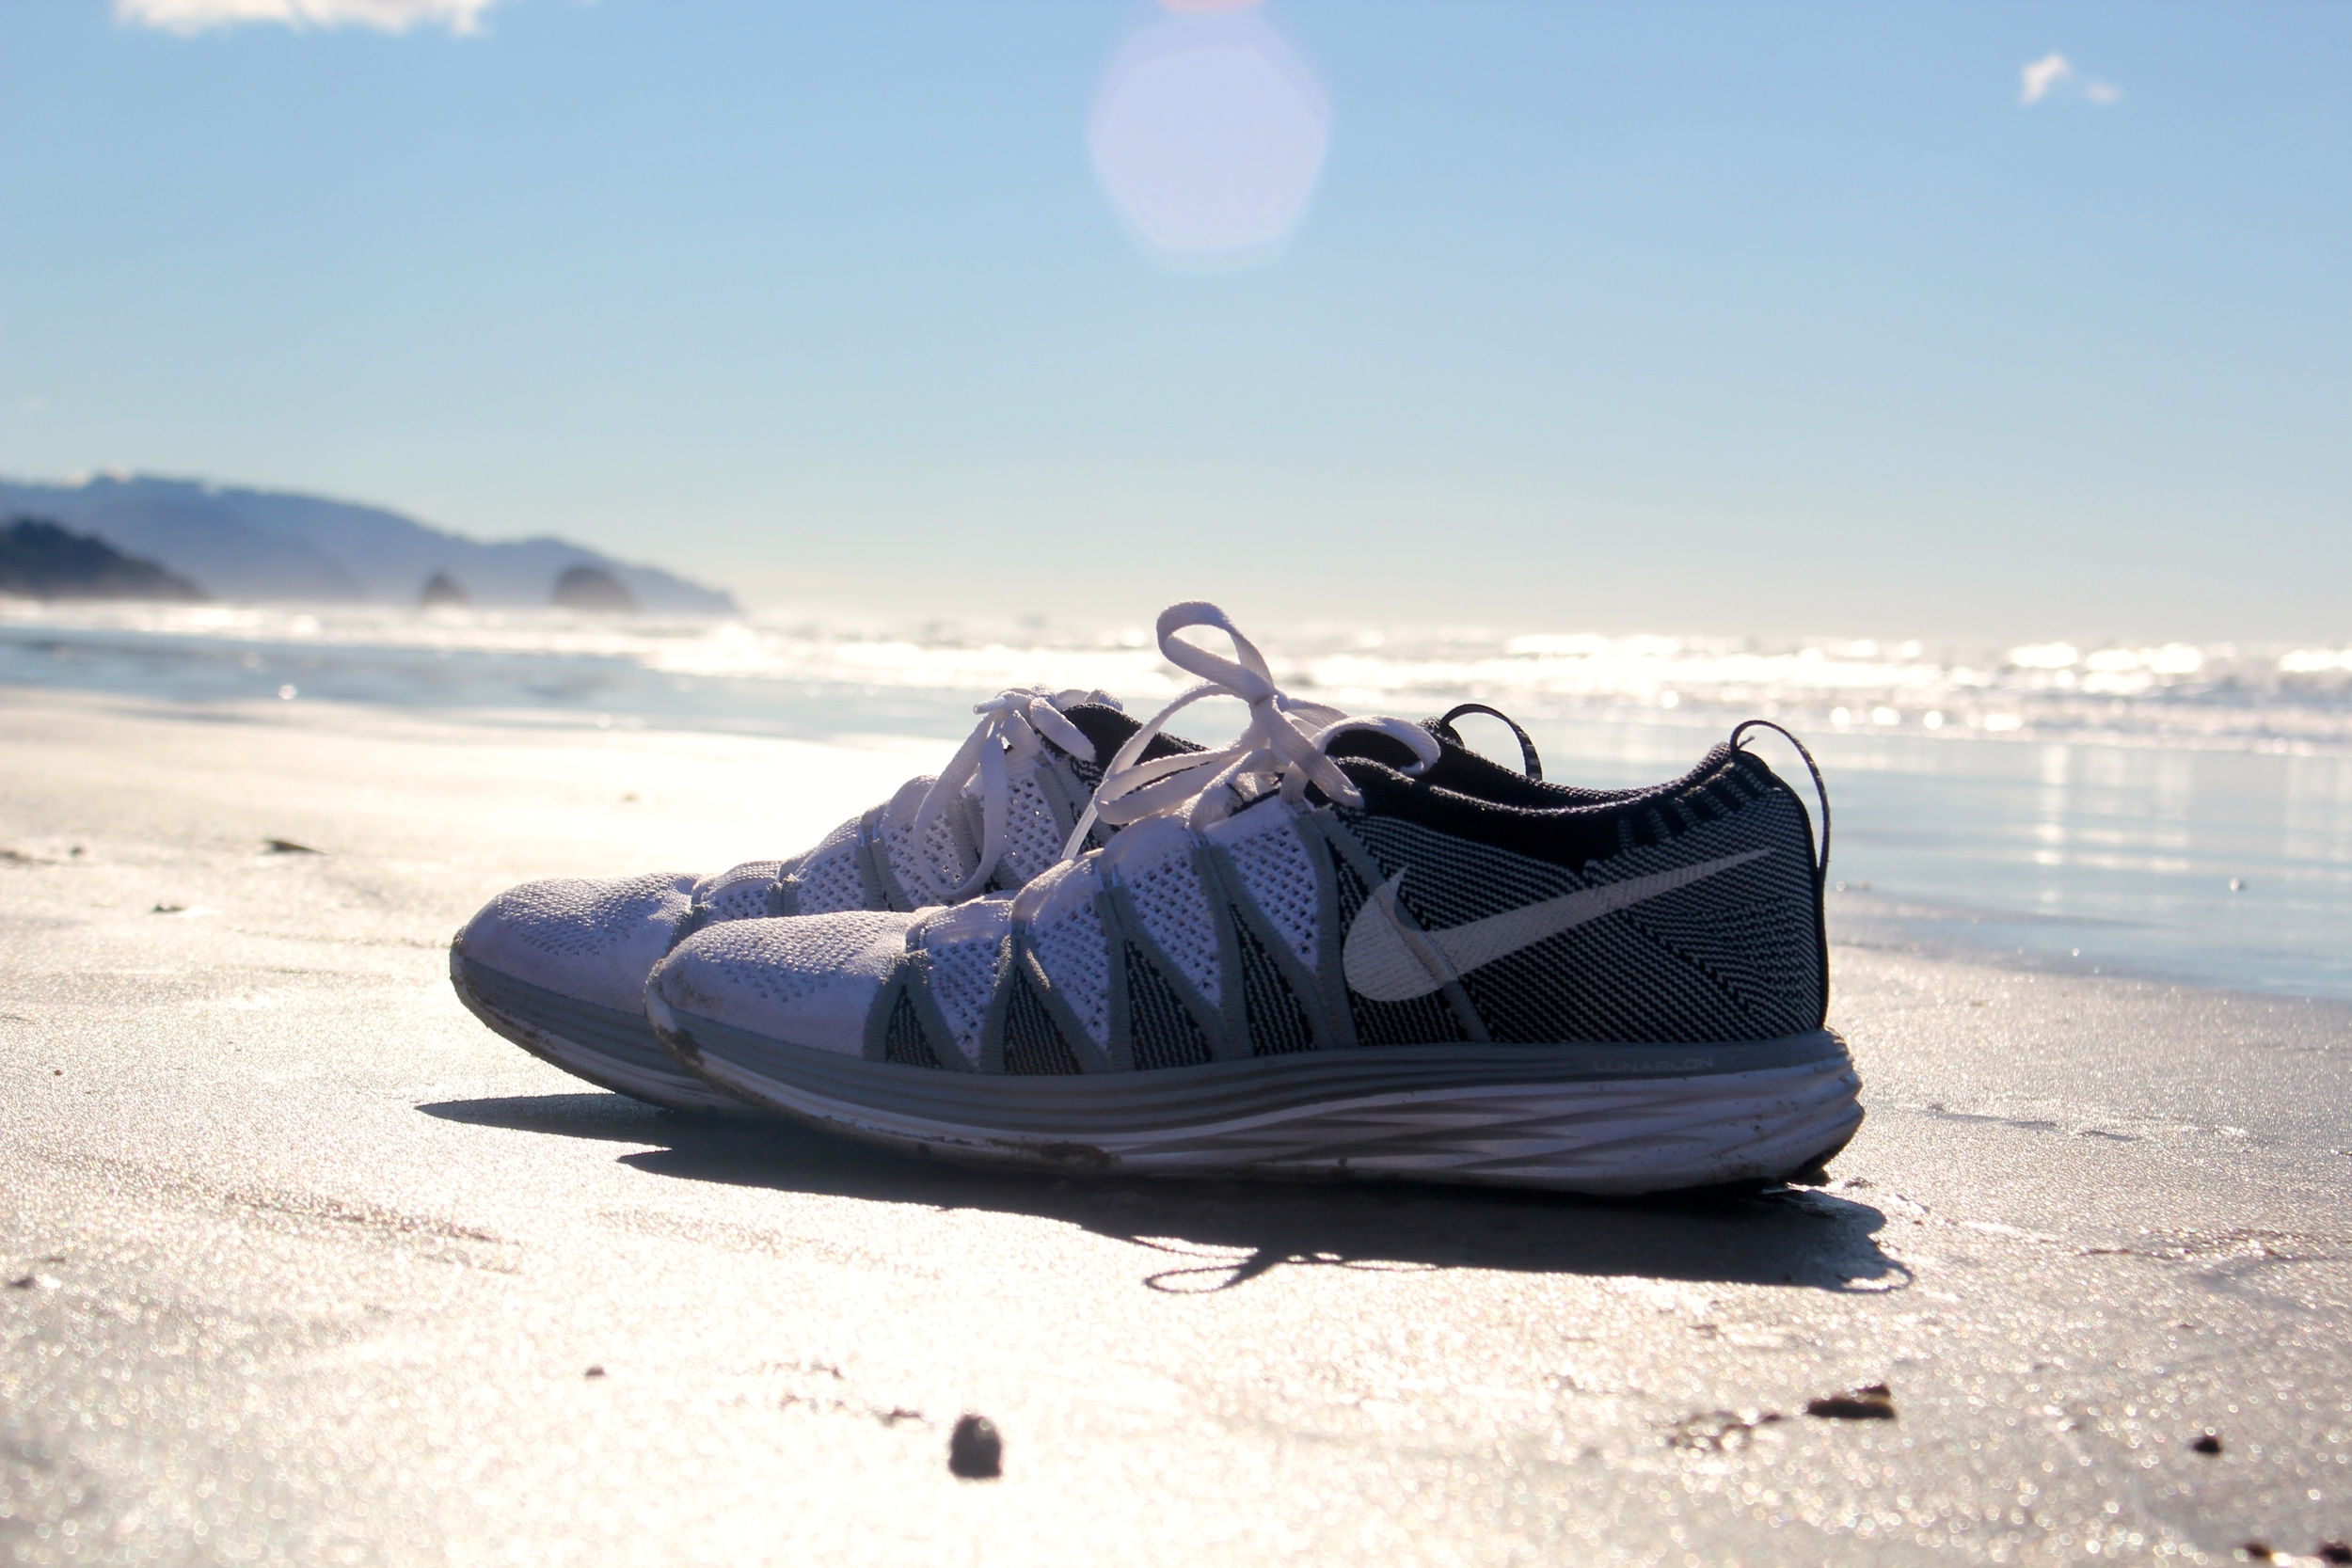 Nike's Fly Knit Lunar Eclipse Running Shoes. How do you do it?